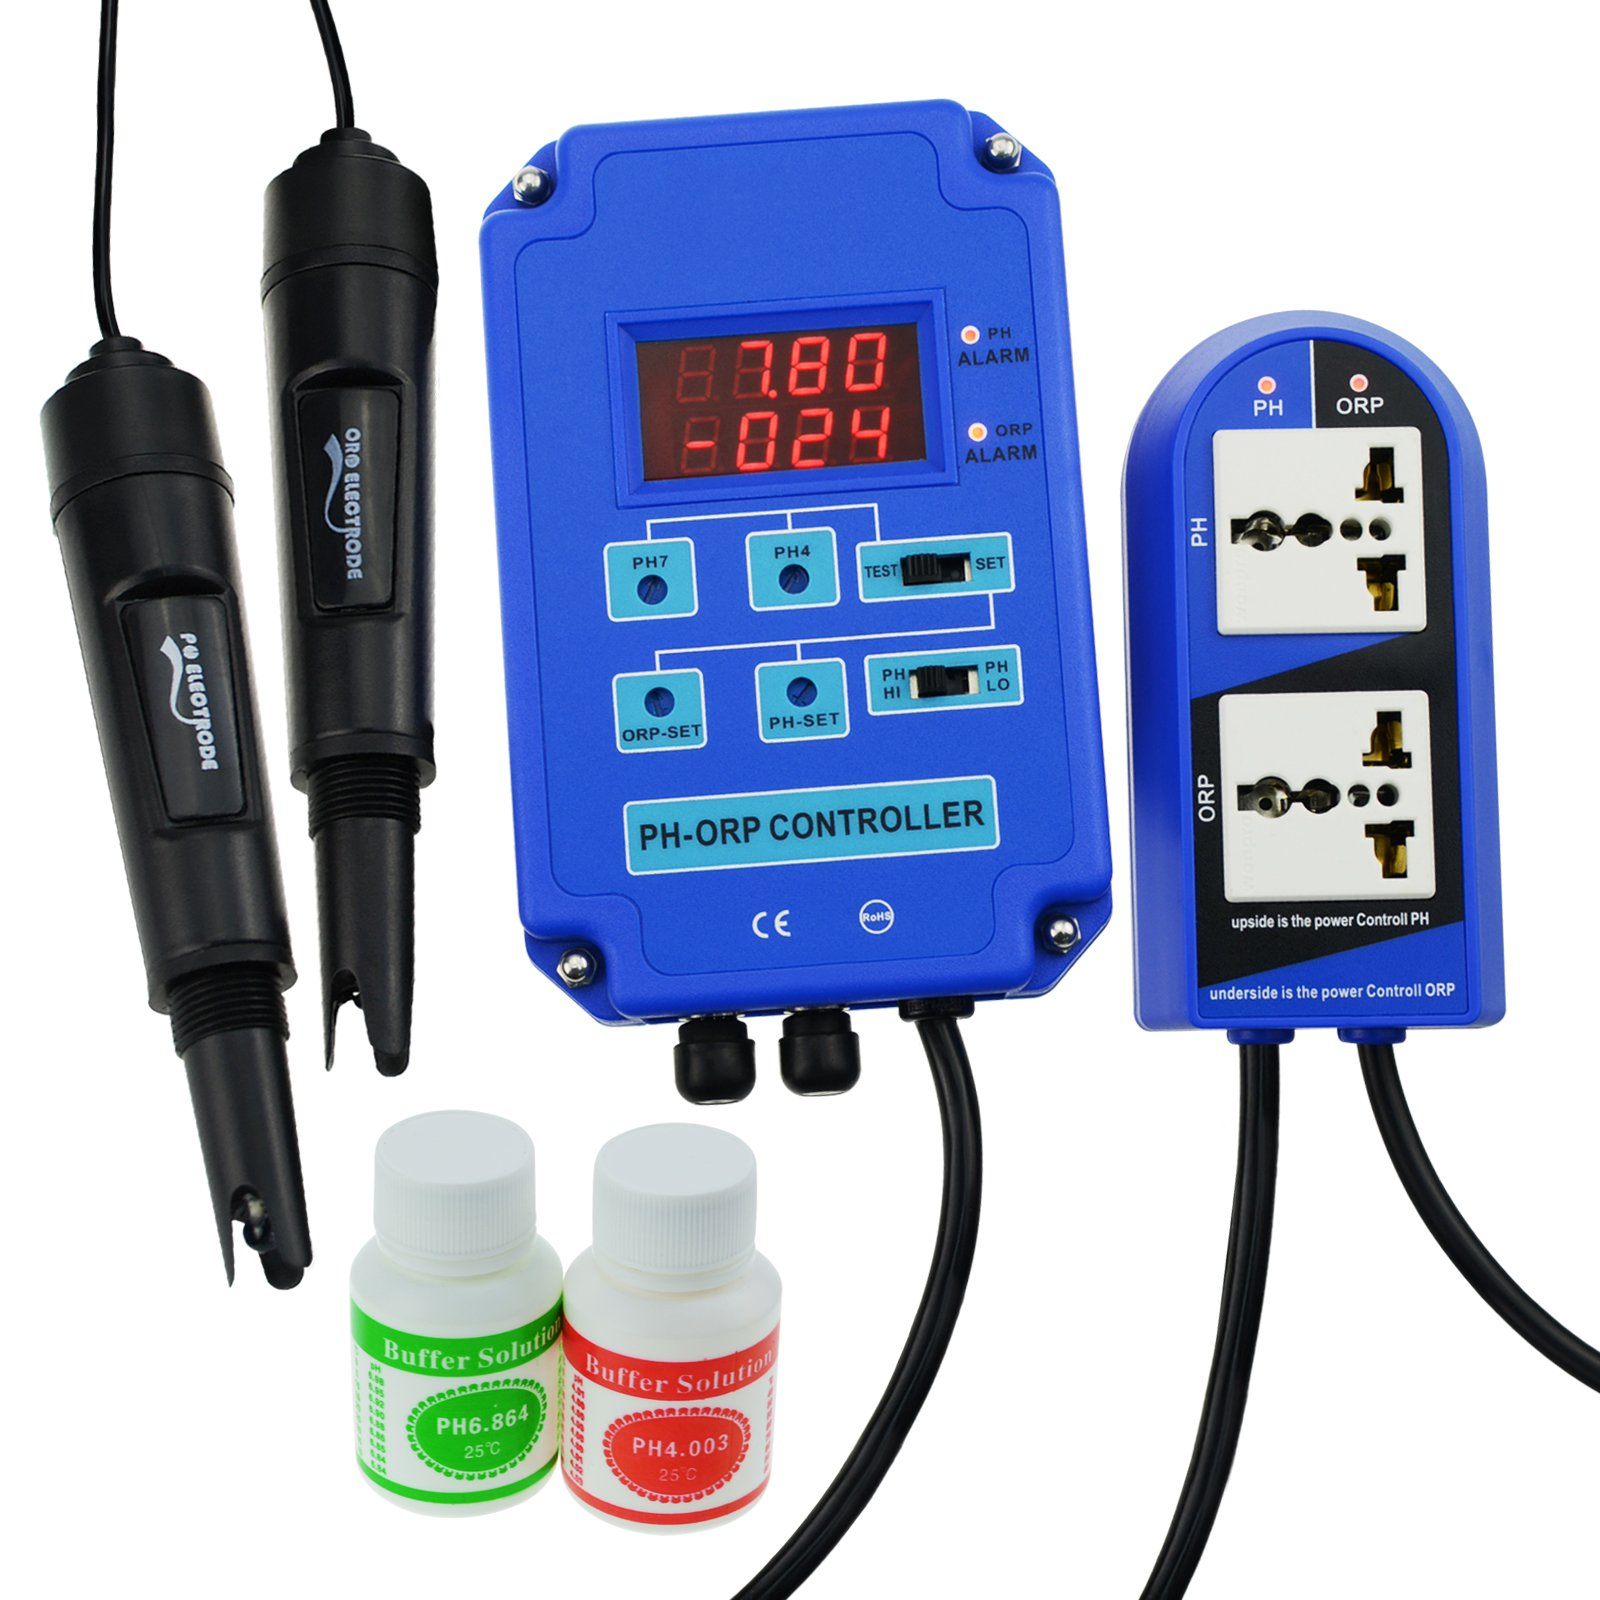 Digital pH ORP 2 in 1 Controller with Separate Relays for pH and ORP by Gain Express